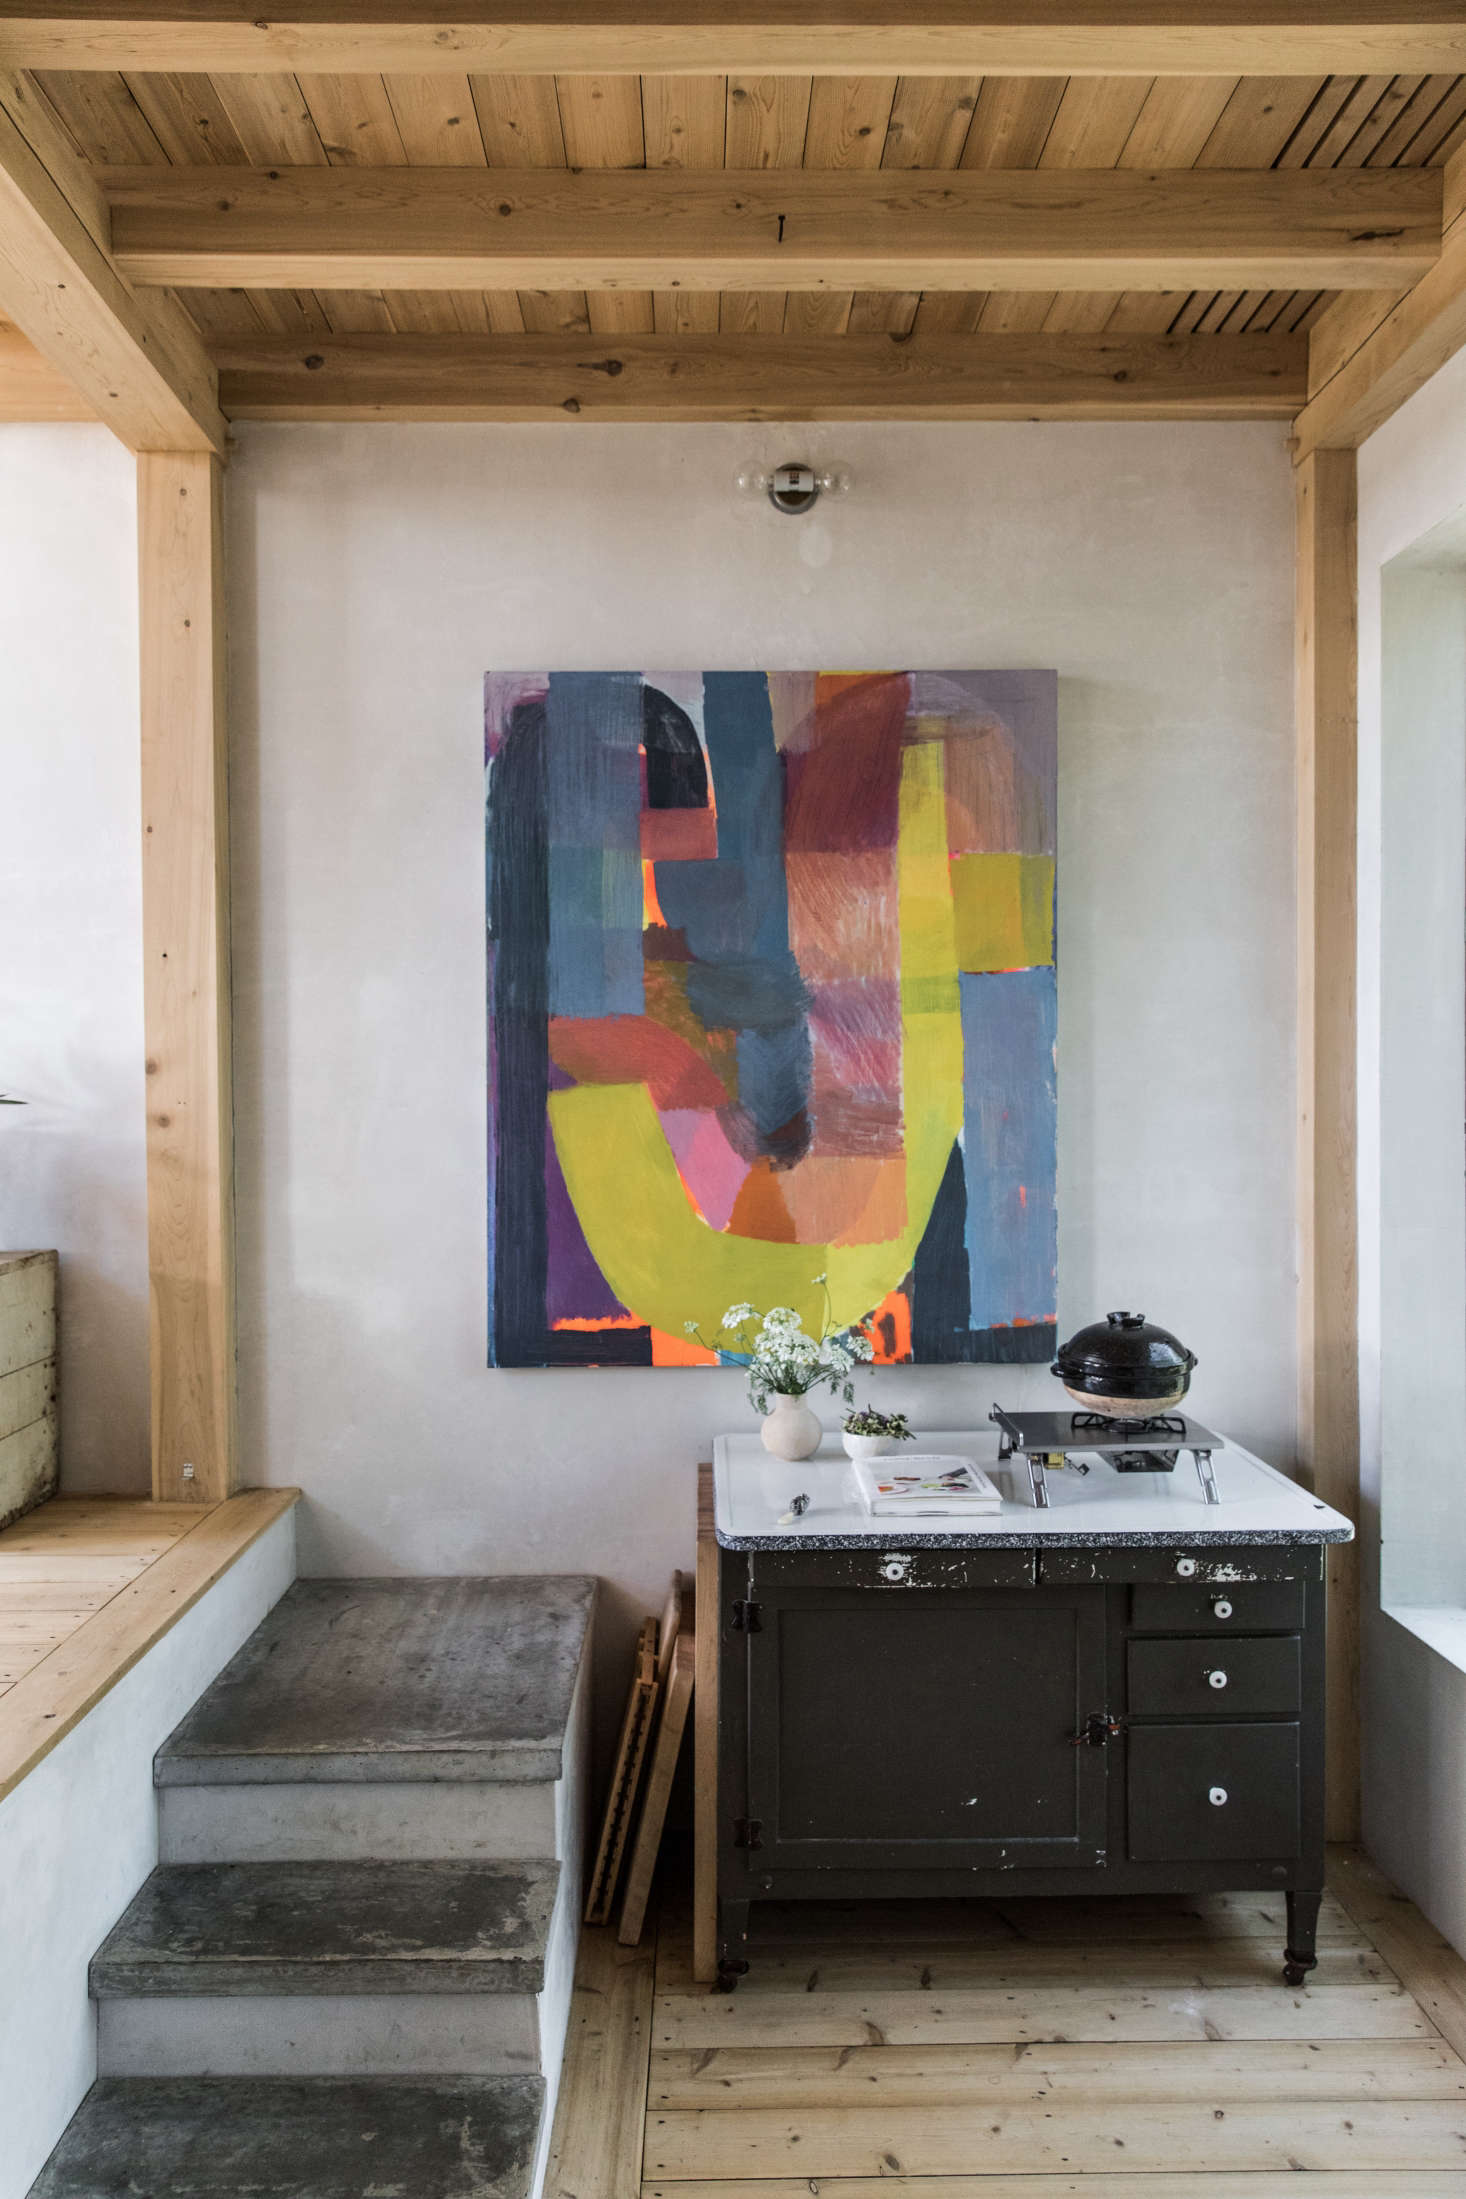 At the other end of the kitchen, a small cooktop sits atop a vintage cabinet.